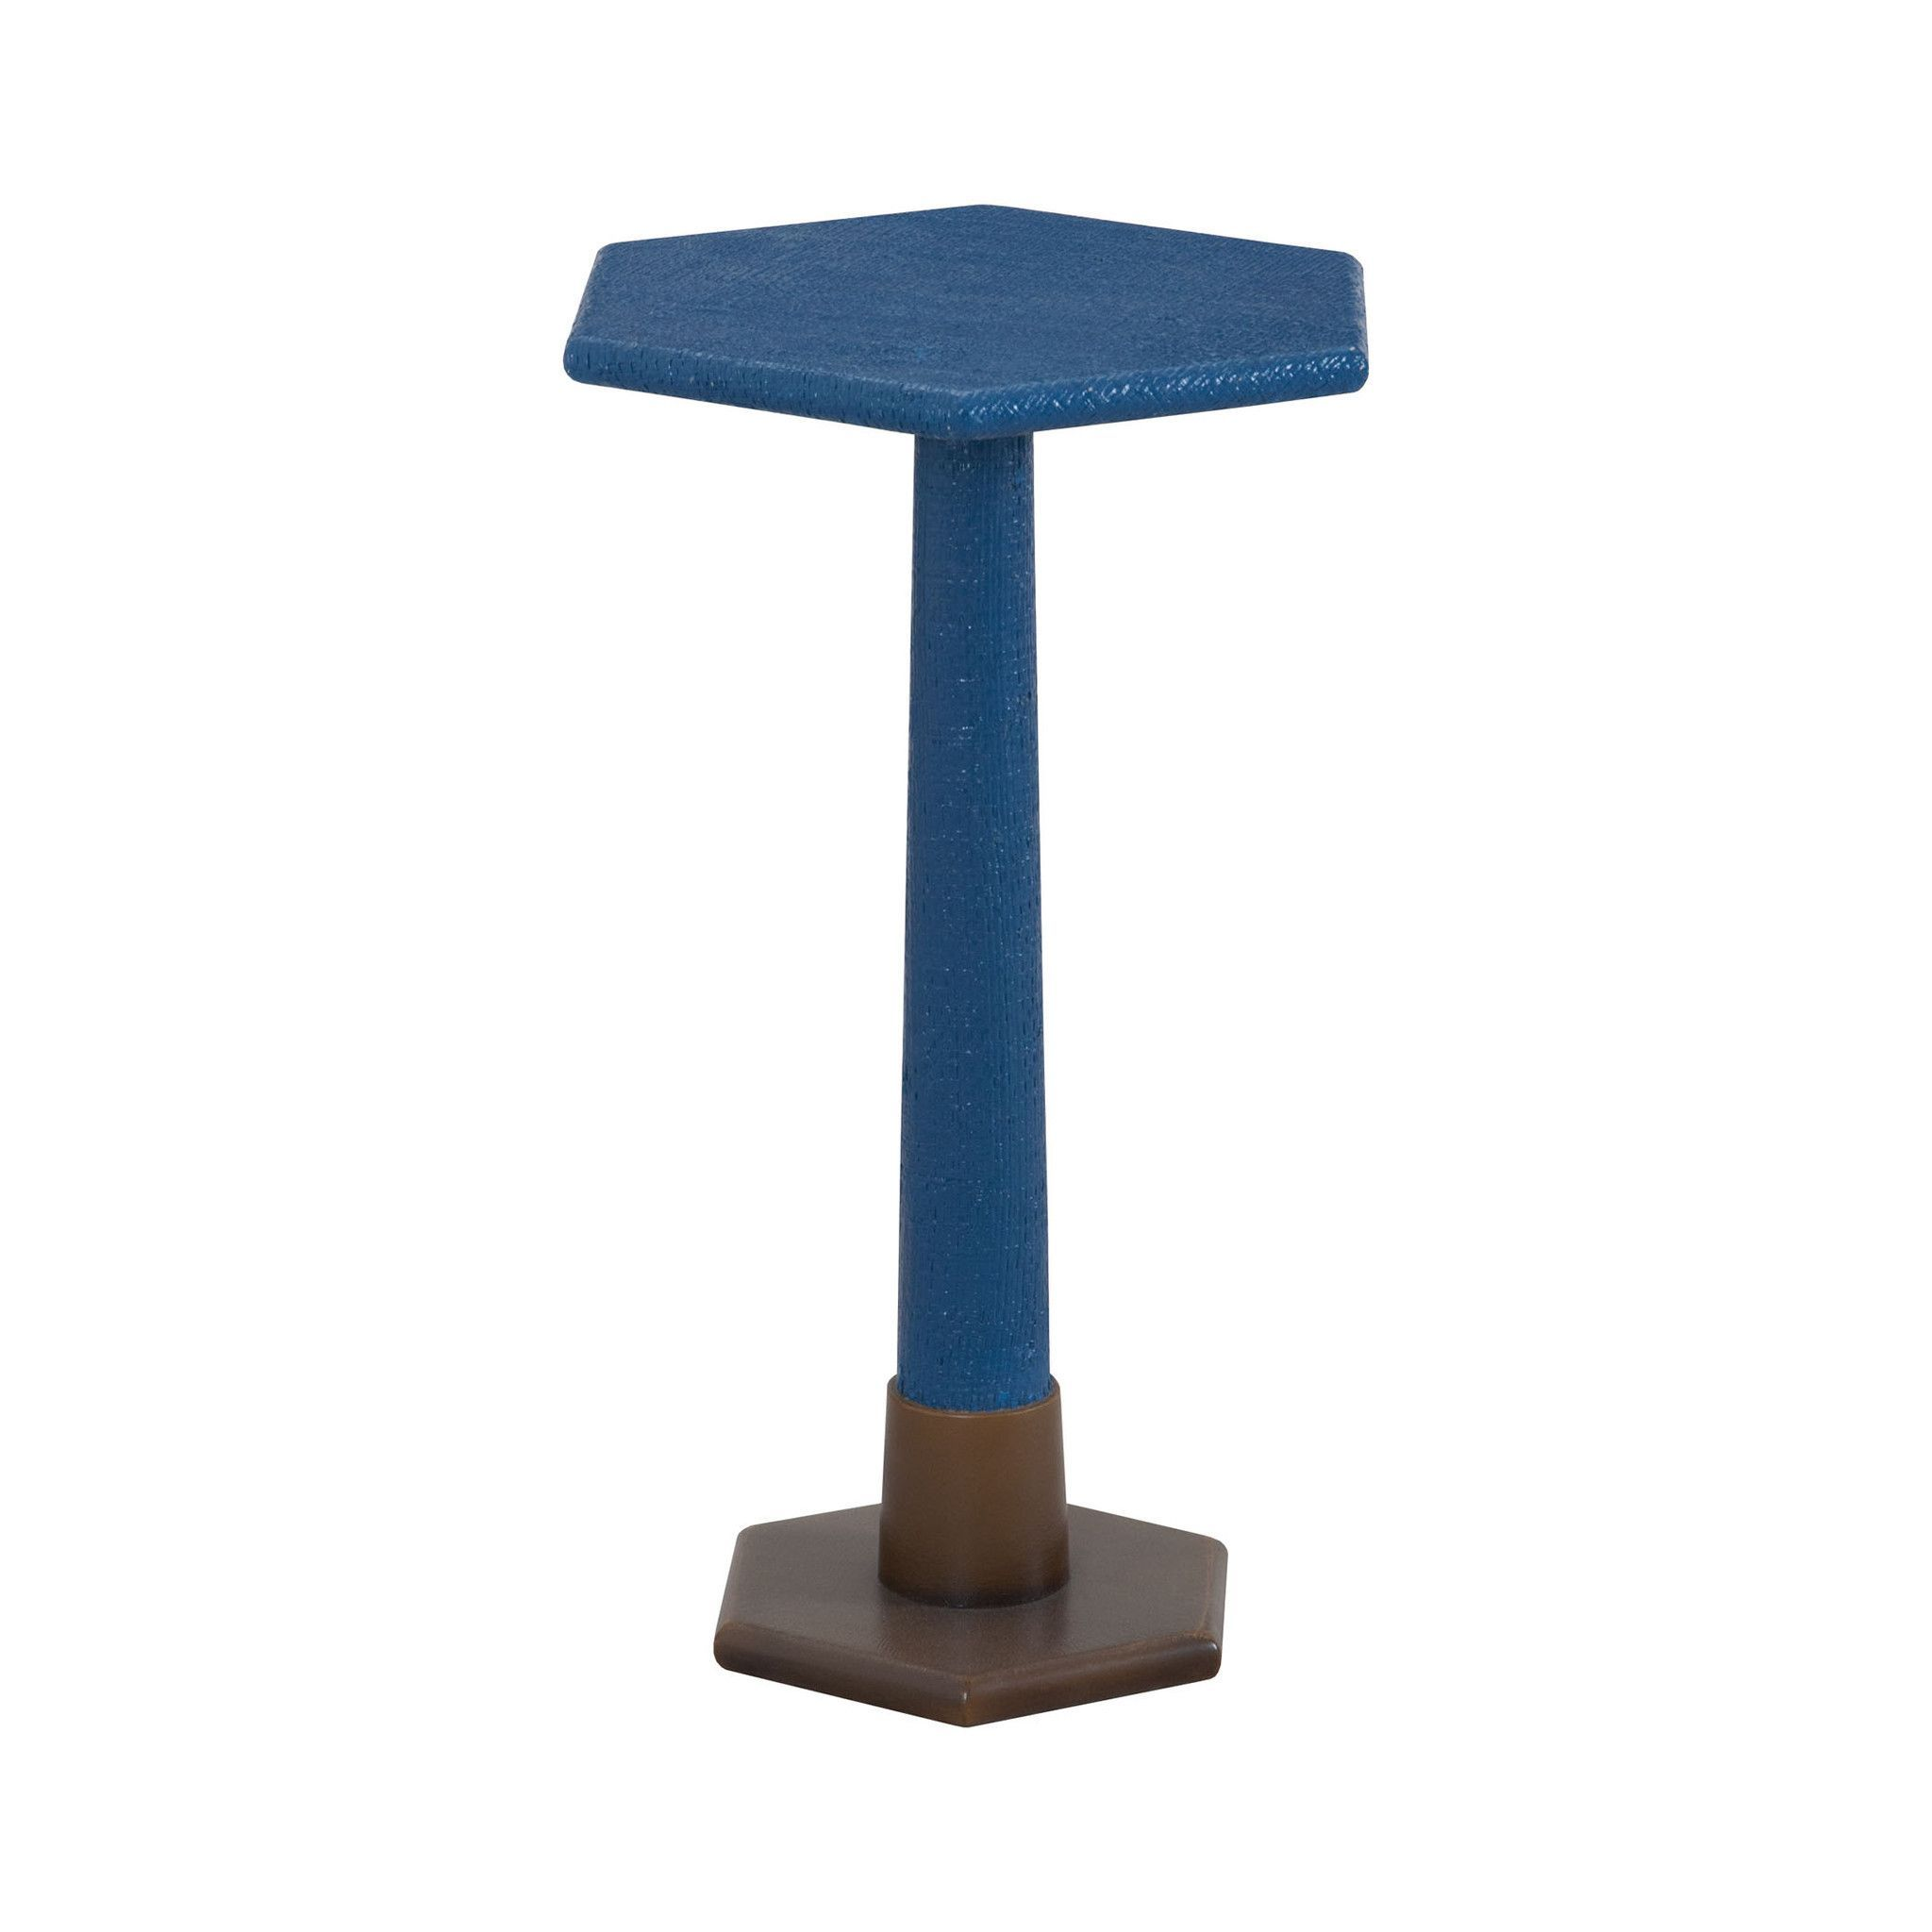 Launch Pad Navy Blue Accent Table Natural Raffia,Navy,Aged Brass Tone